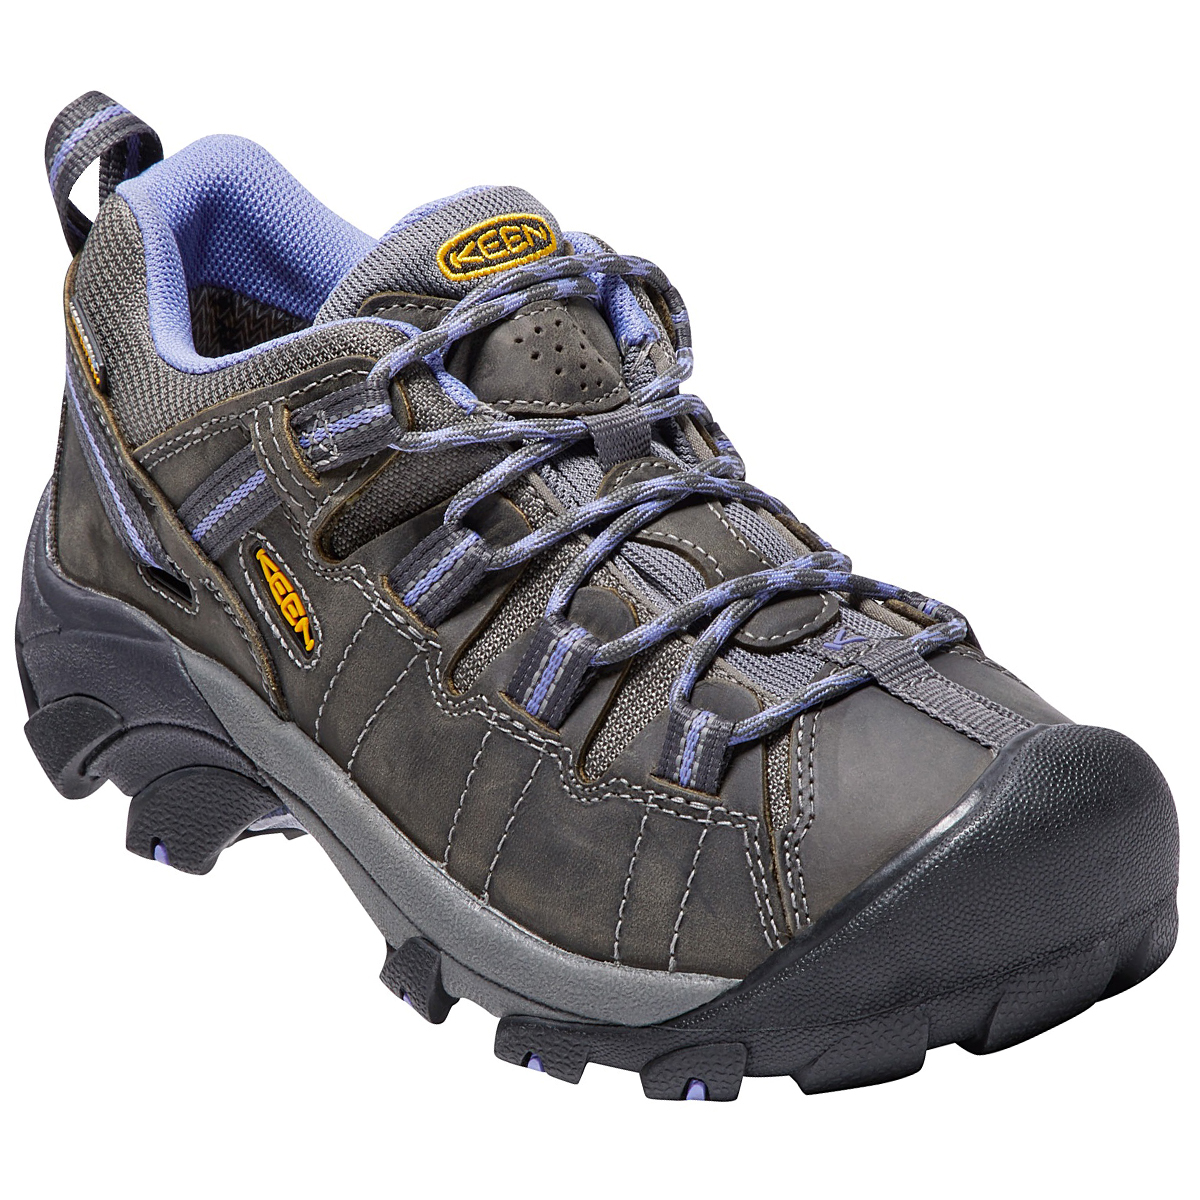 Keen Women's Targhee Ii Waterproof Low Hiking Shoes - Black, 7.5